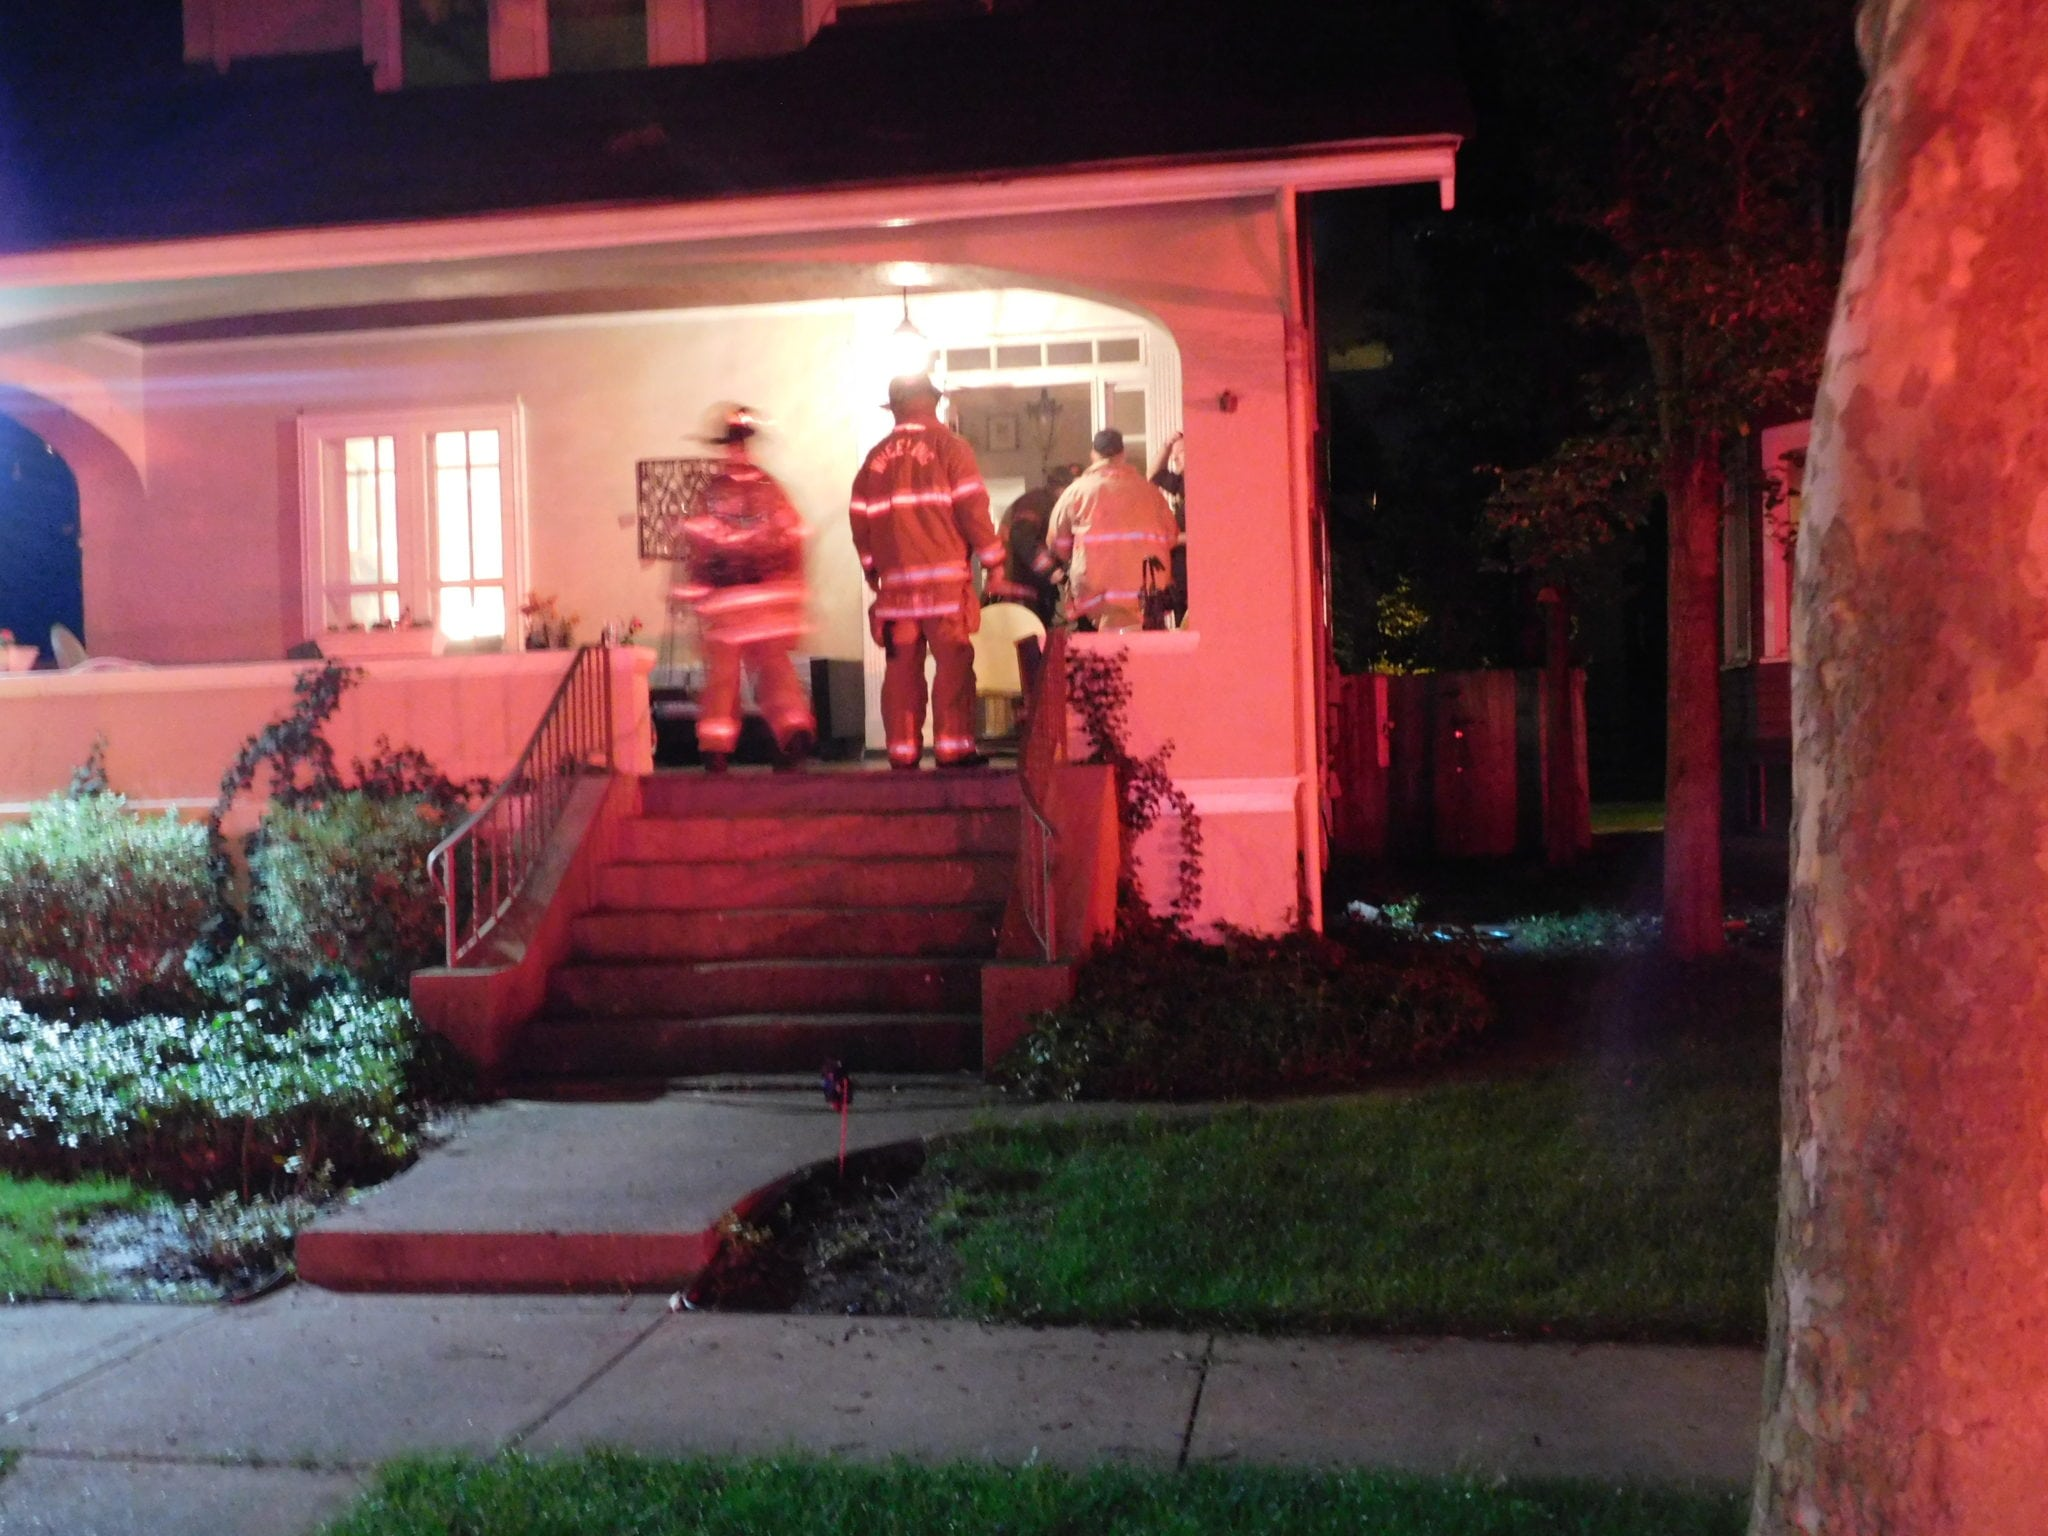 Firefighters on porch of house